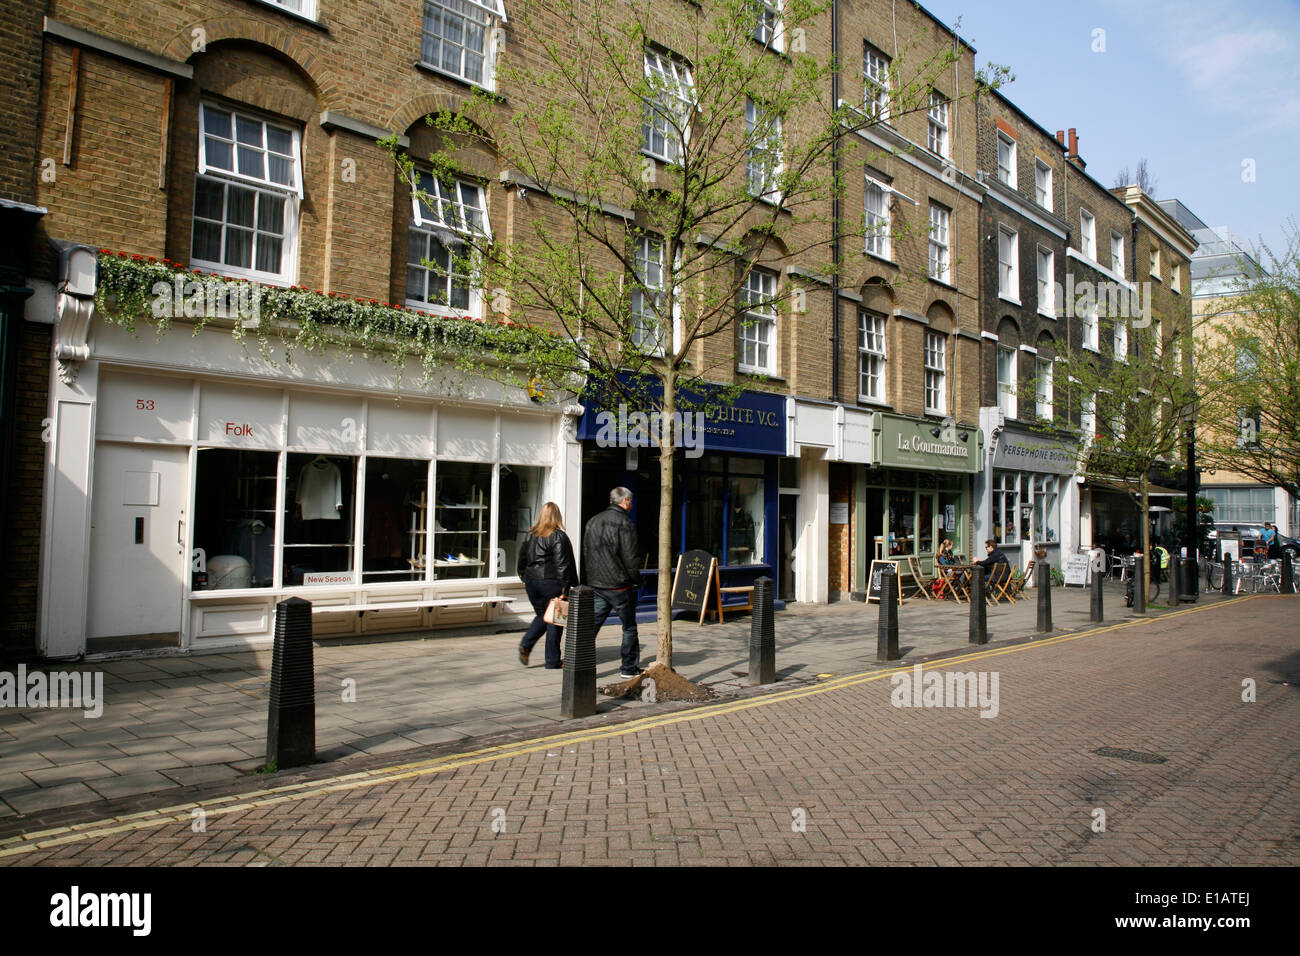 Folk and Private White VC gents outfitters on Lamb's Conduit Street, Bloomsbury, London, UK - Stock Image